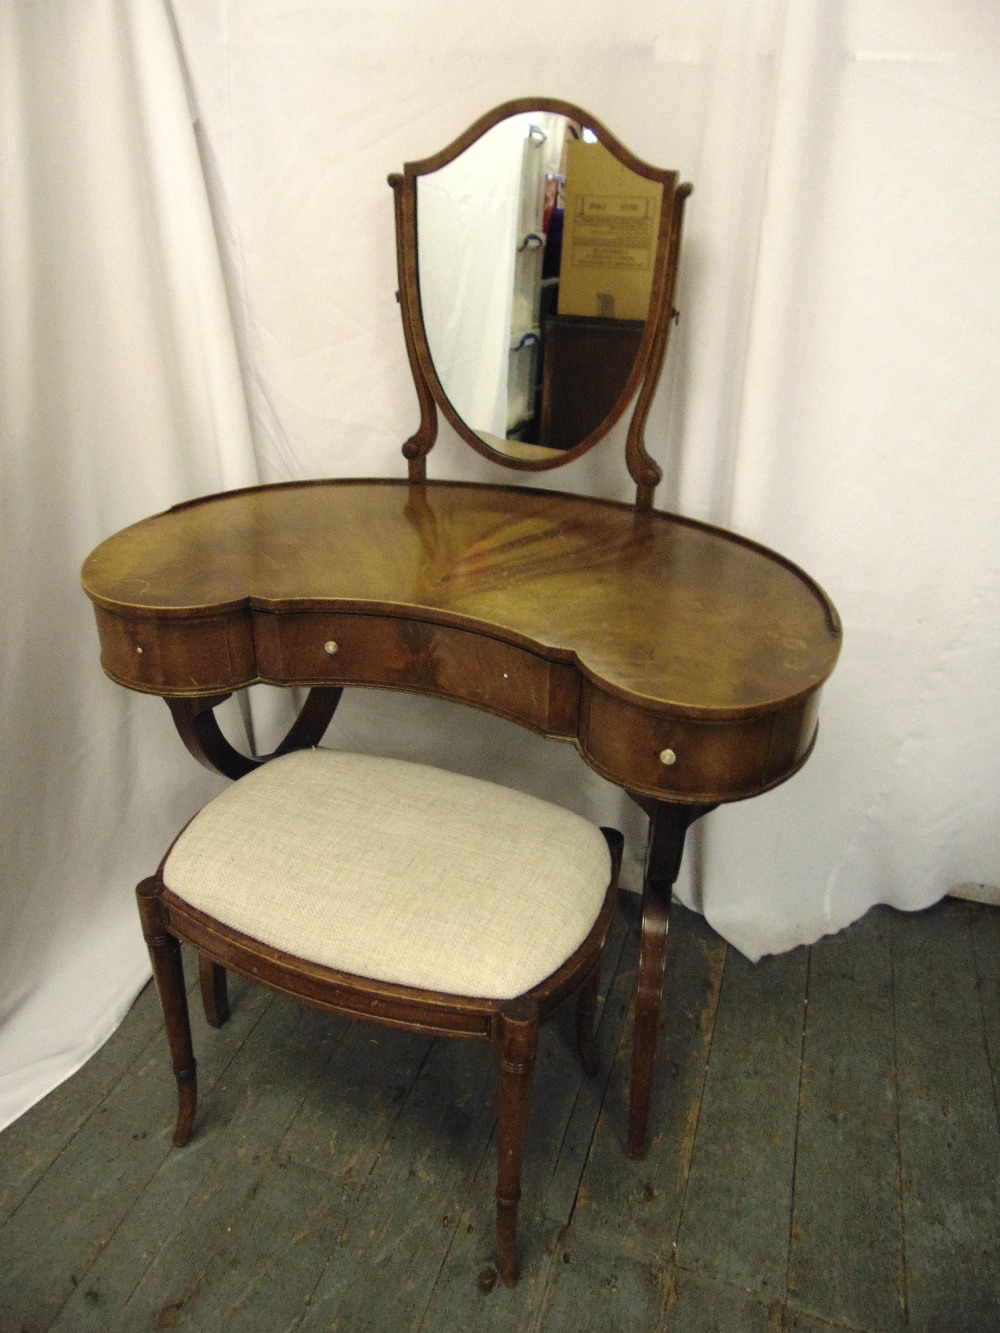 Lot 8 - An Edwardian kidney shaped mahogany dressing table and stool with shield shaped mirror